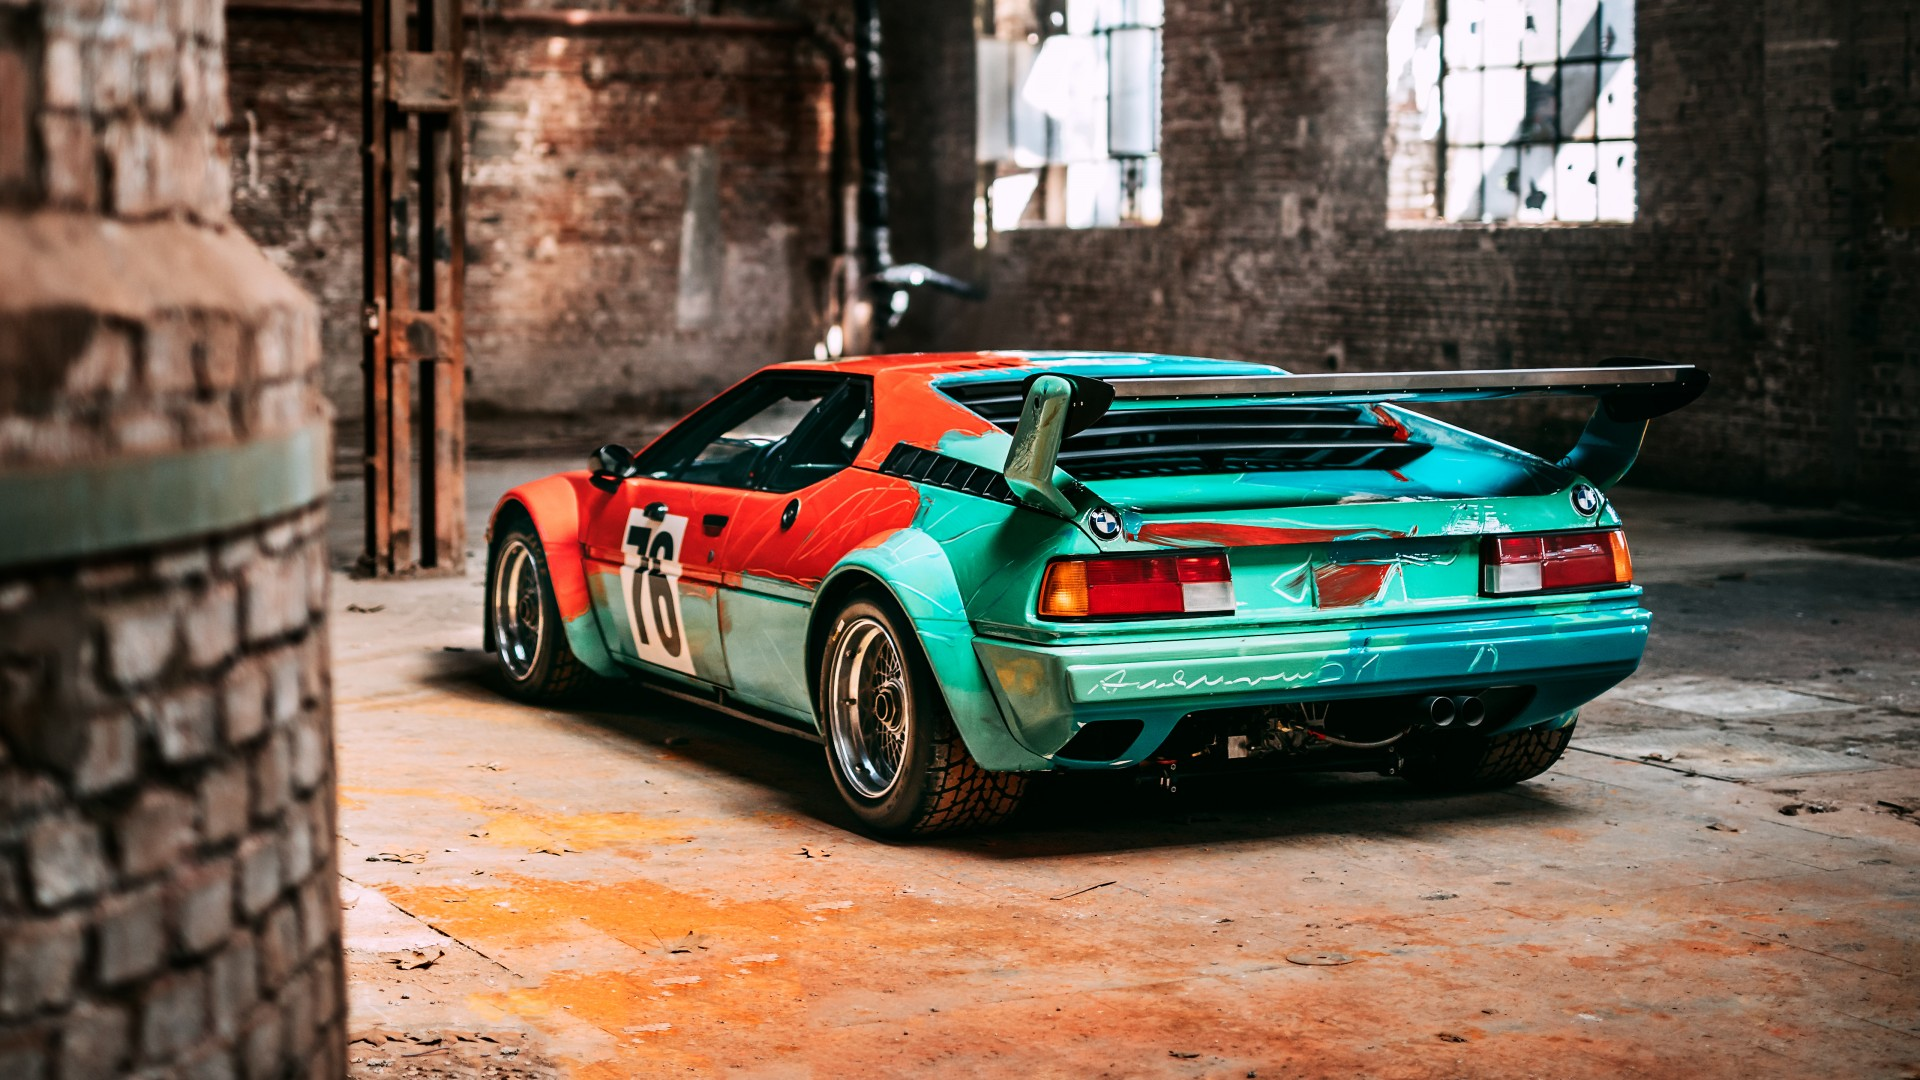 K And M Dodge >> BMW M1 Group 4 Rennversion Art Car by Andy Warhol